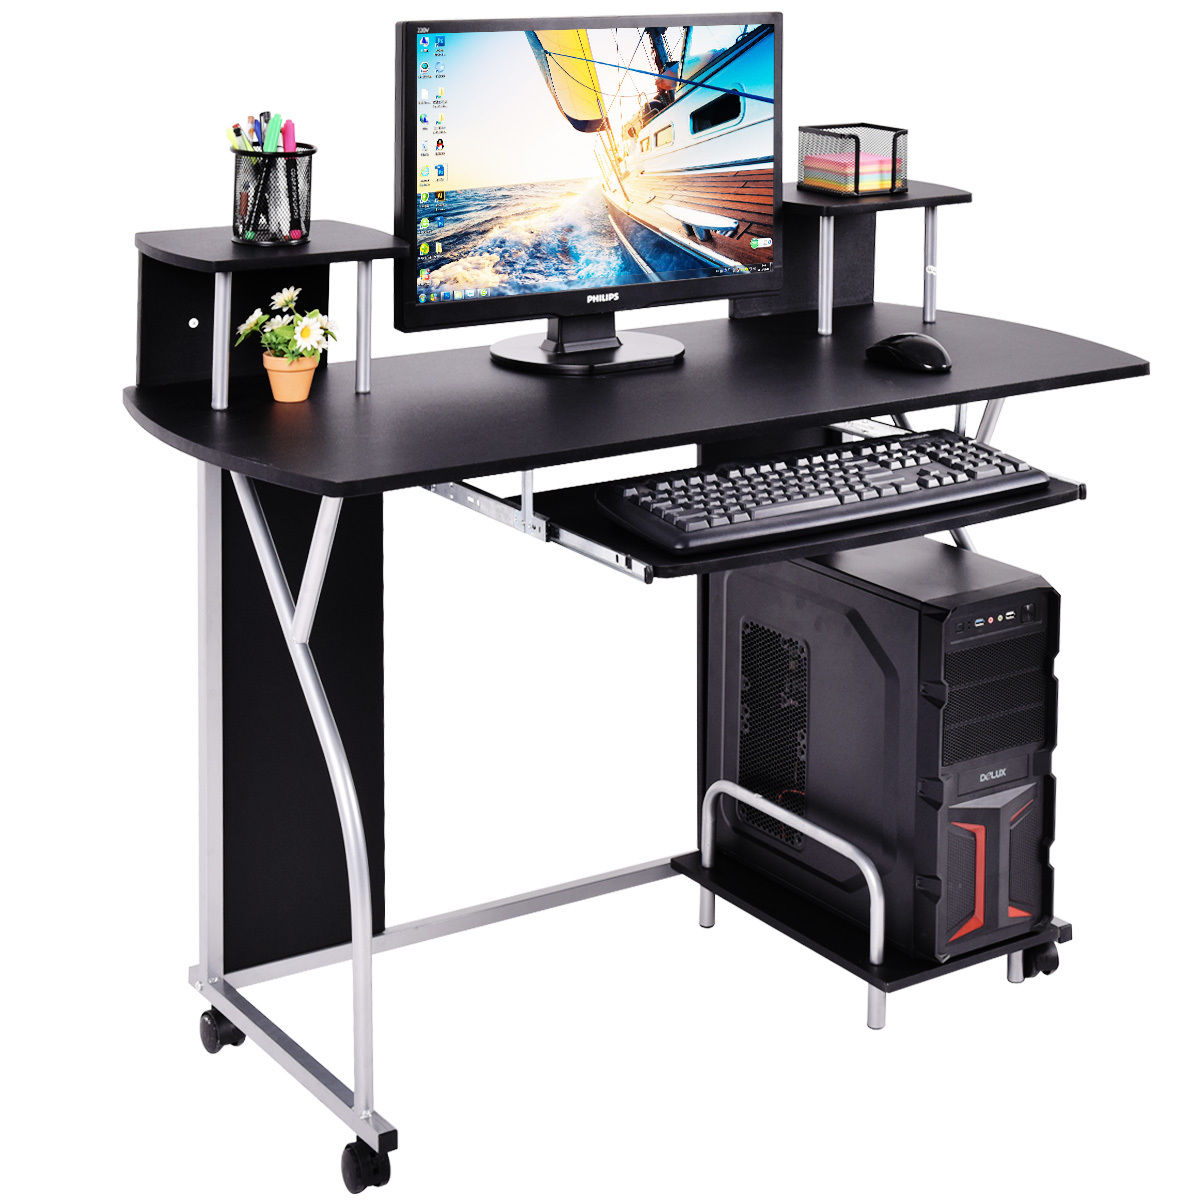 Costway Rolling Computer Desk PC Laptop Desk Pull Out Tray Home Office  Workstation Black